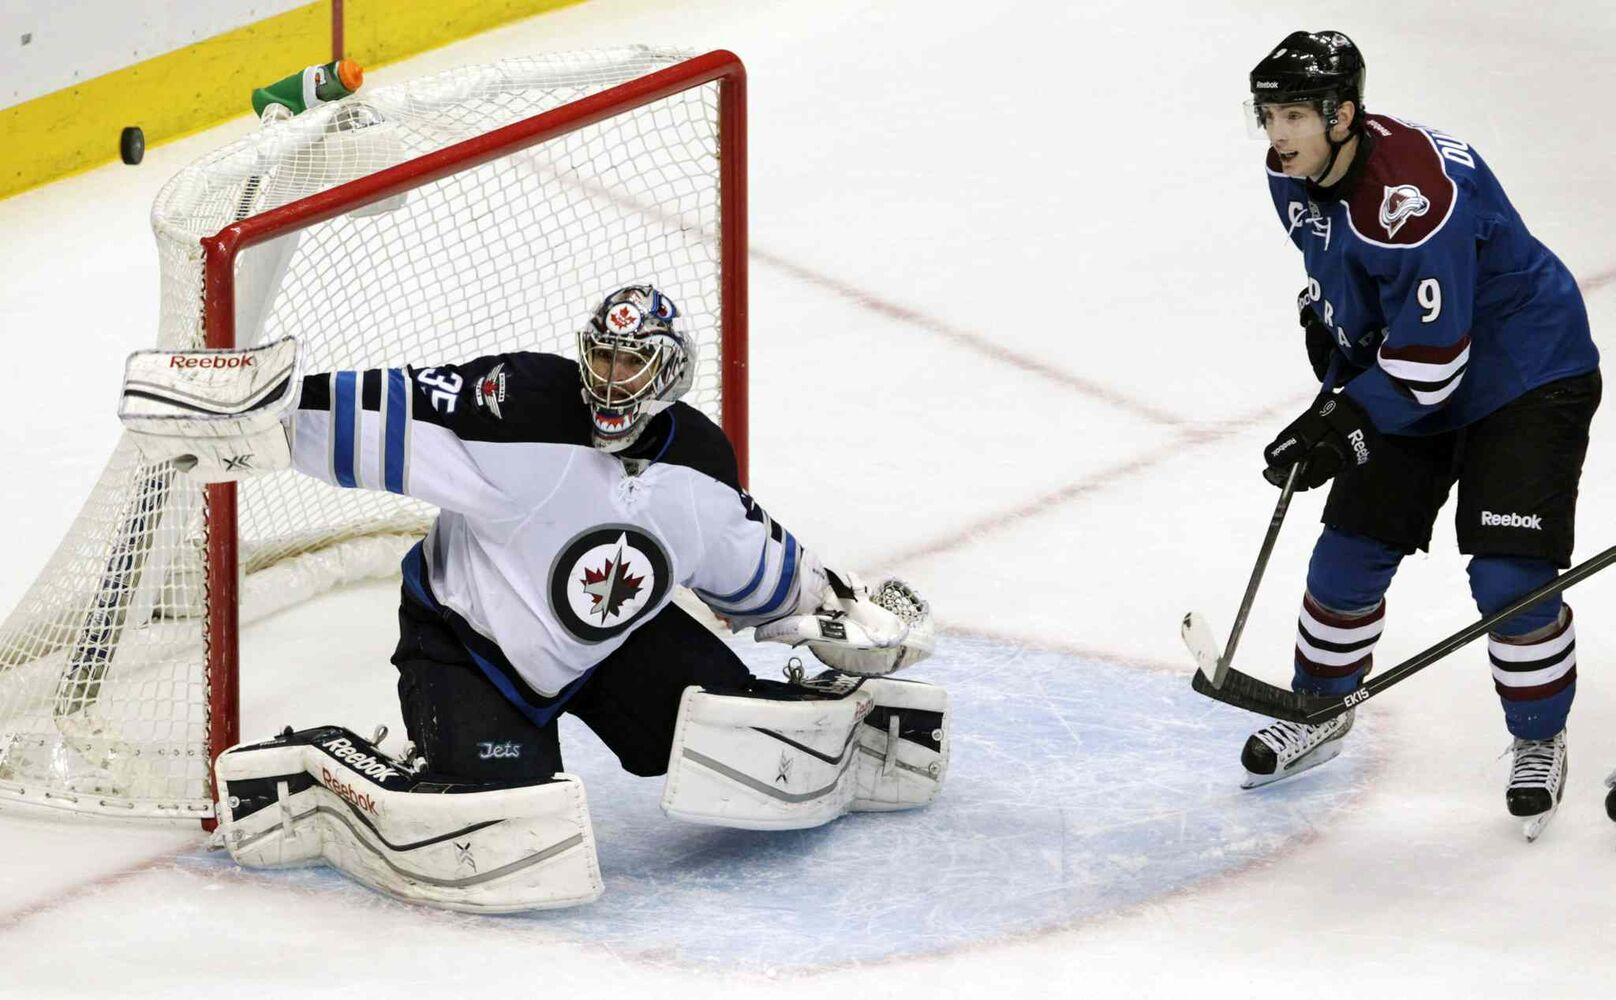 With his stick in his own net, Winnipeg Jets goalie Al Montoya (left) blocks a shot as Colorado Avalanche center Matt Duchene moves into the crease during overtime. (Joe Mahoney / The Associated Press)